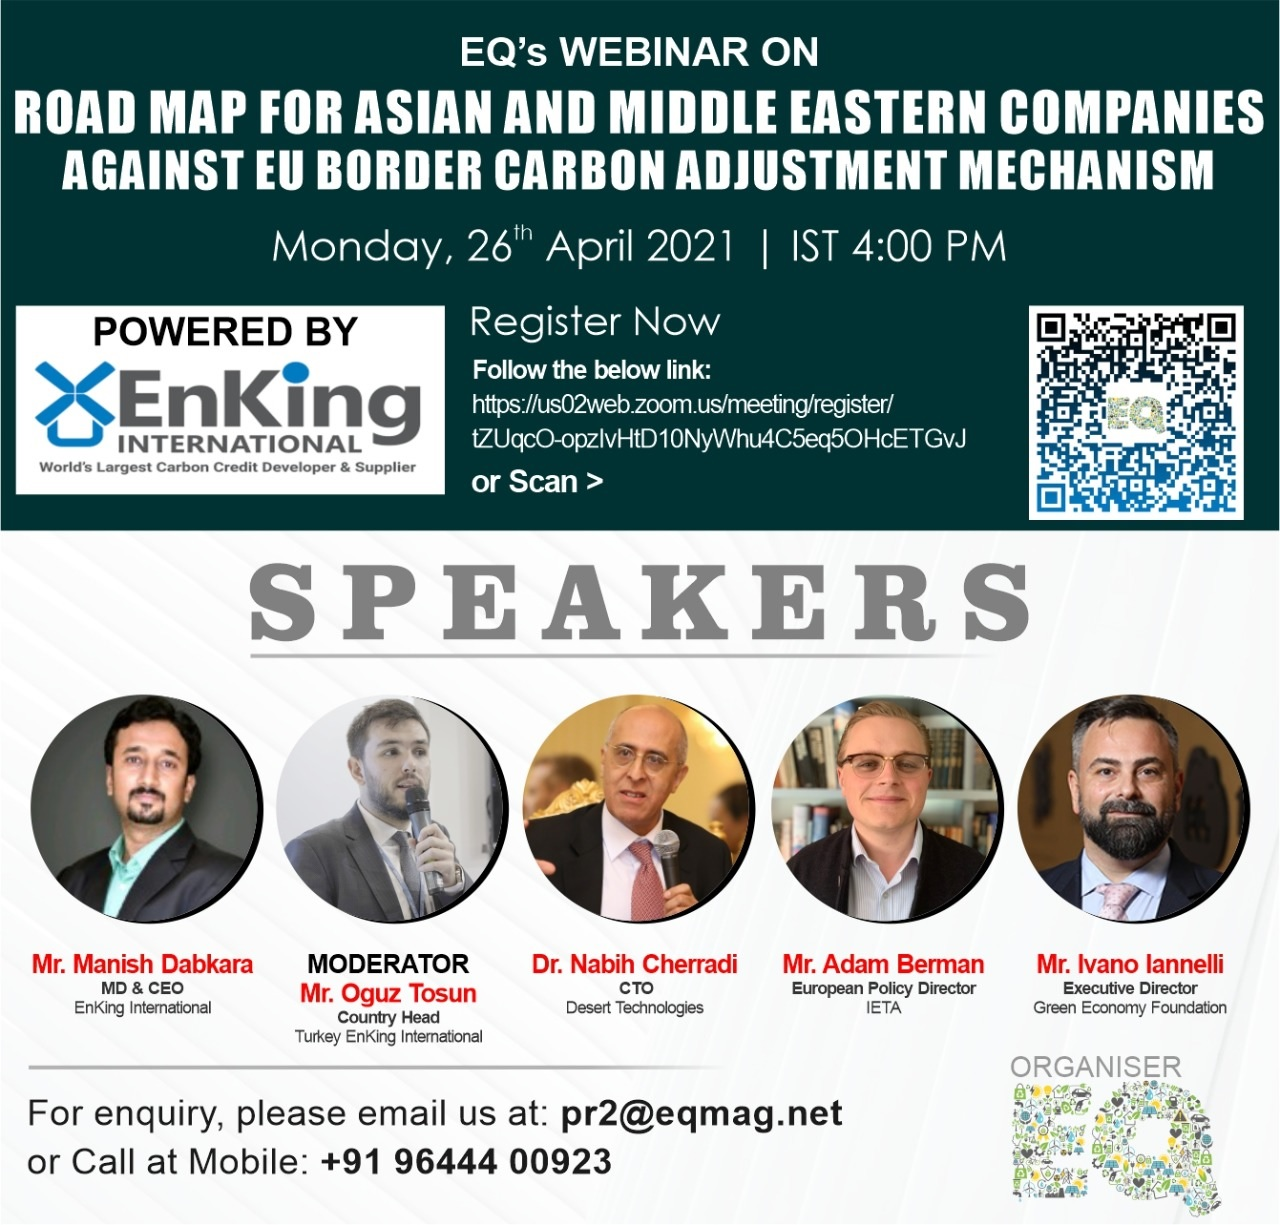 EQ Webinar on Roadmap for Asian and Middle Eastern Companies against EU Border Carbon Adjustment Mechanism on Monday April 26th from 04:00 PM Onwards….Register Now !!!